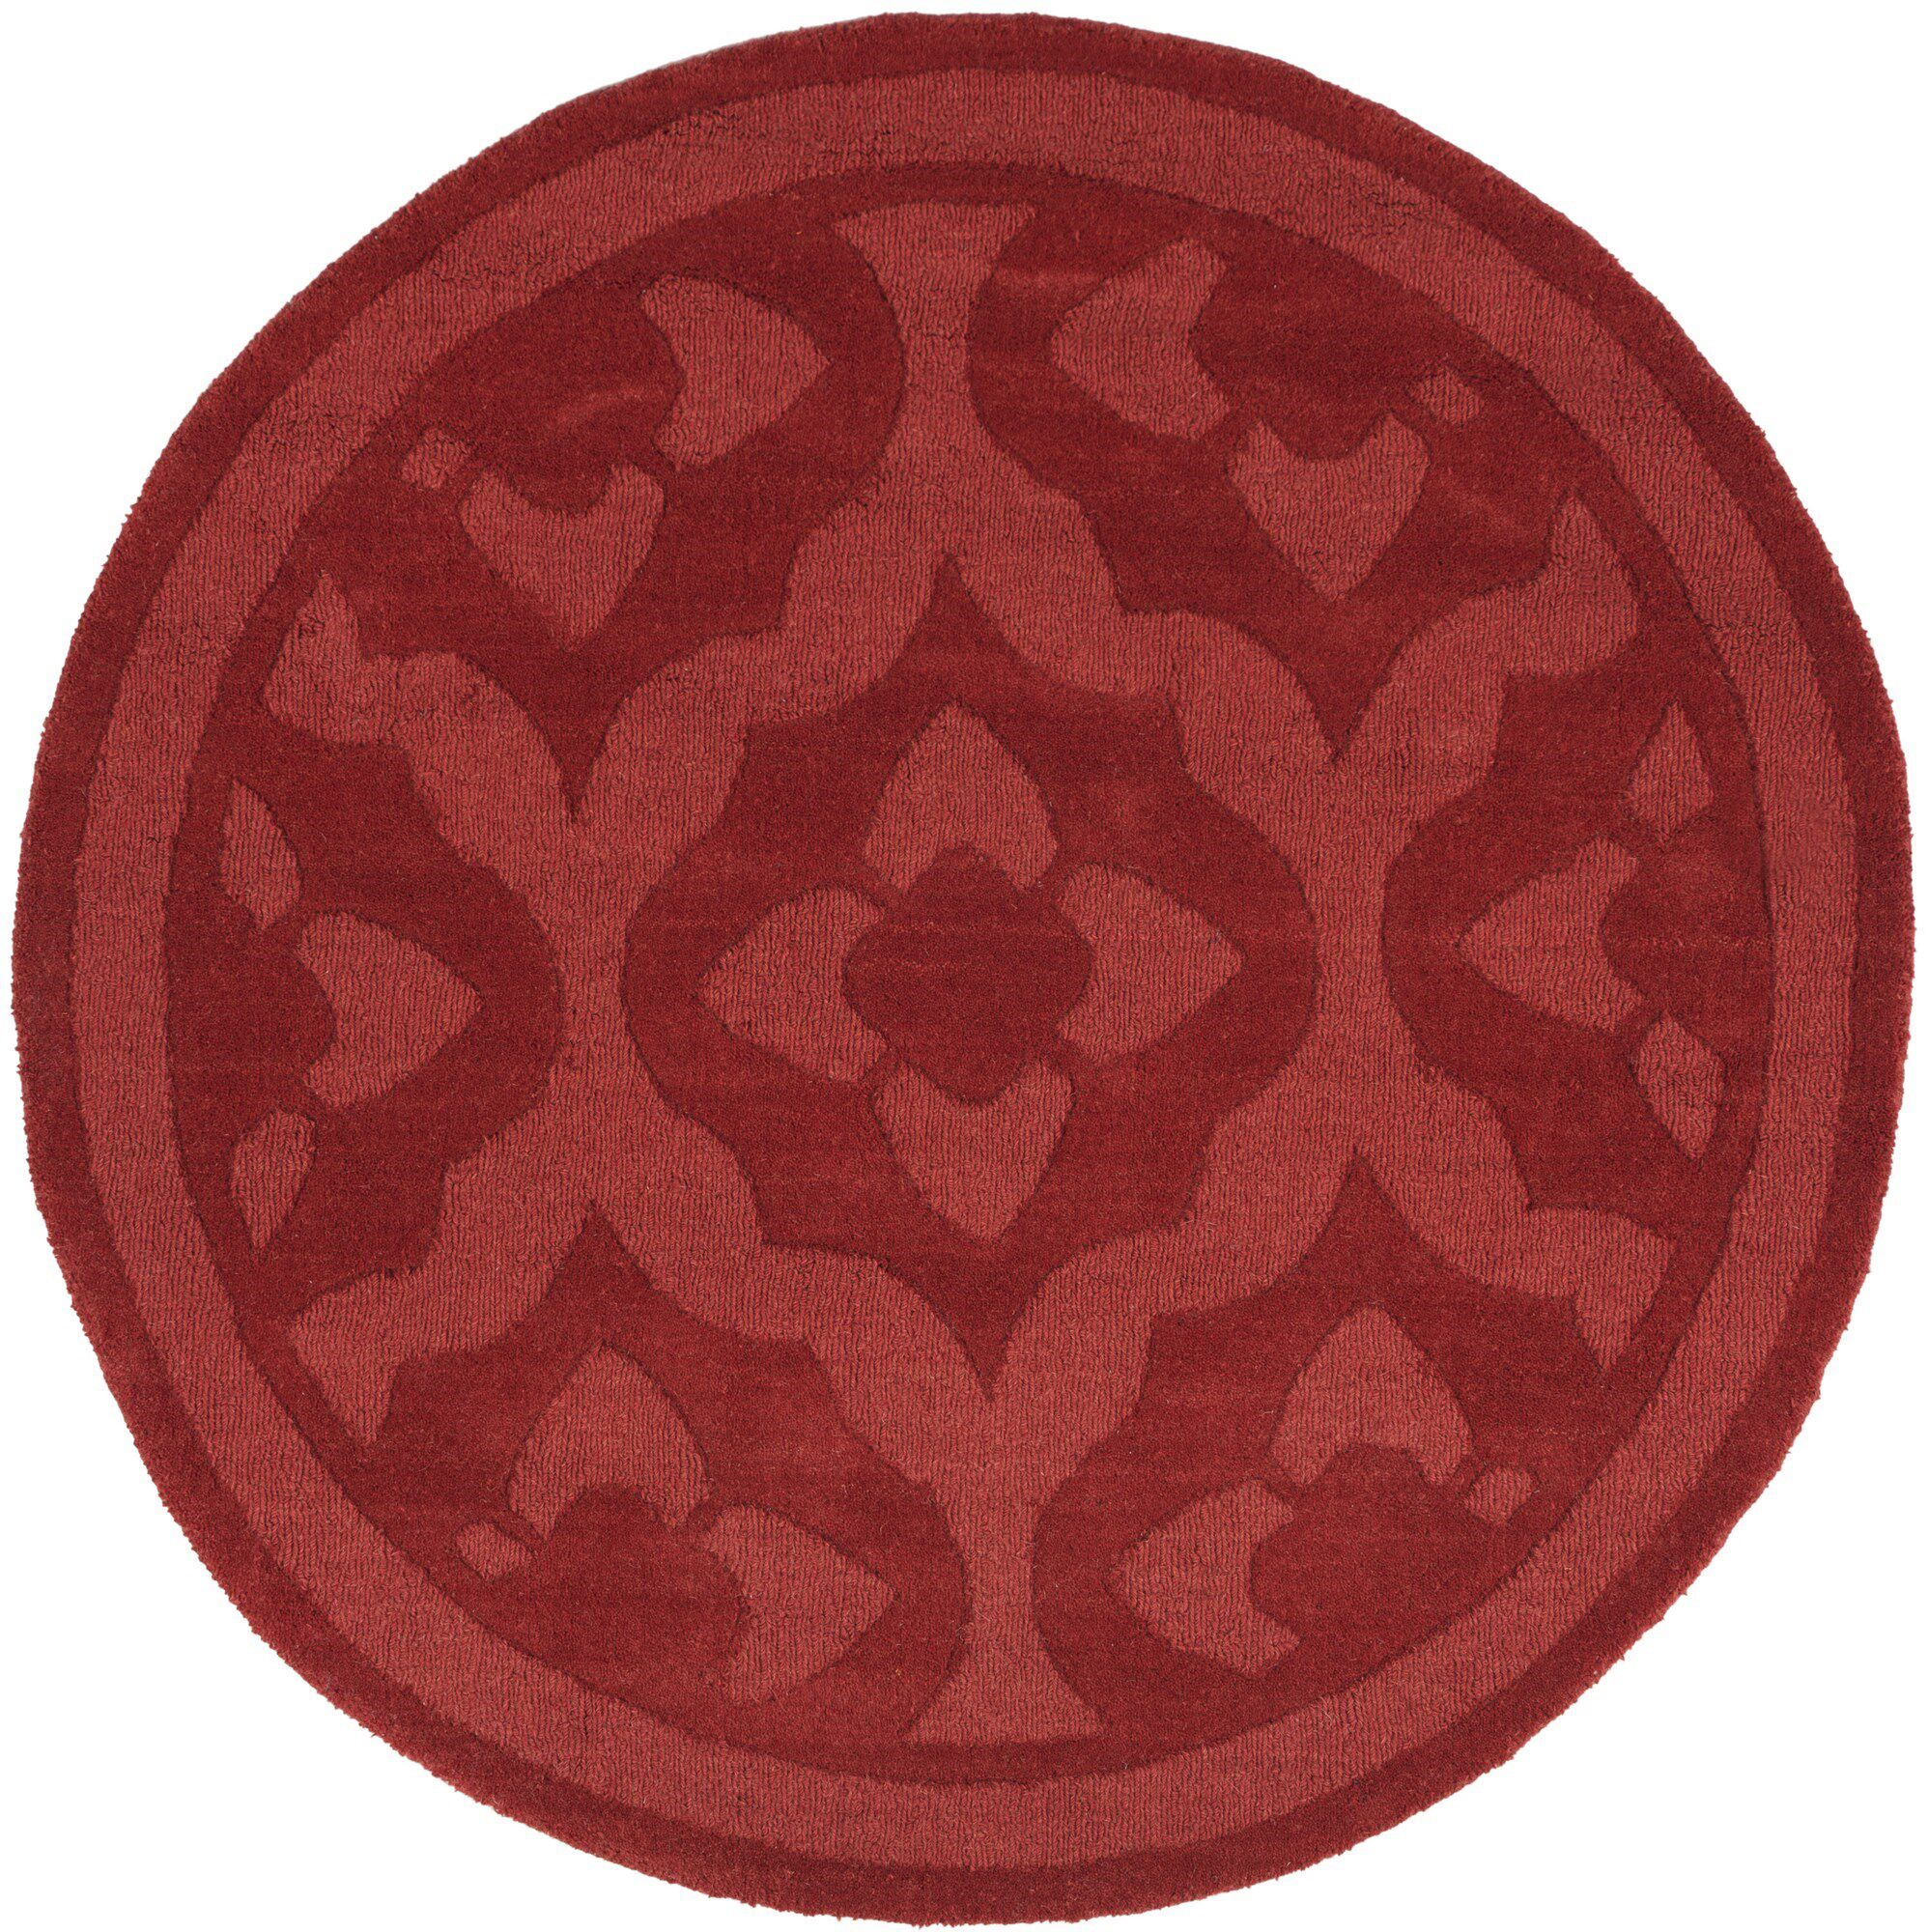 Trombetta Hand Tufted/Hand Loomed Wool Vermillion Area Rug Rug Size: Round 8'